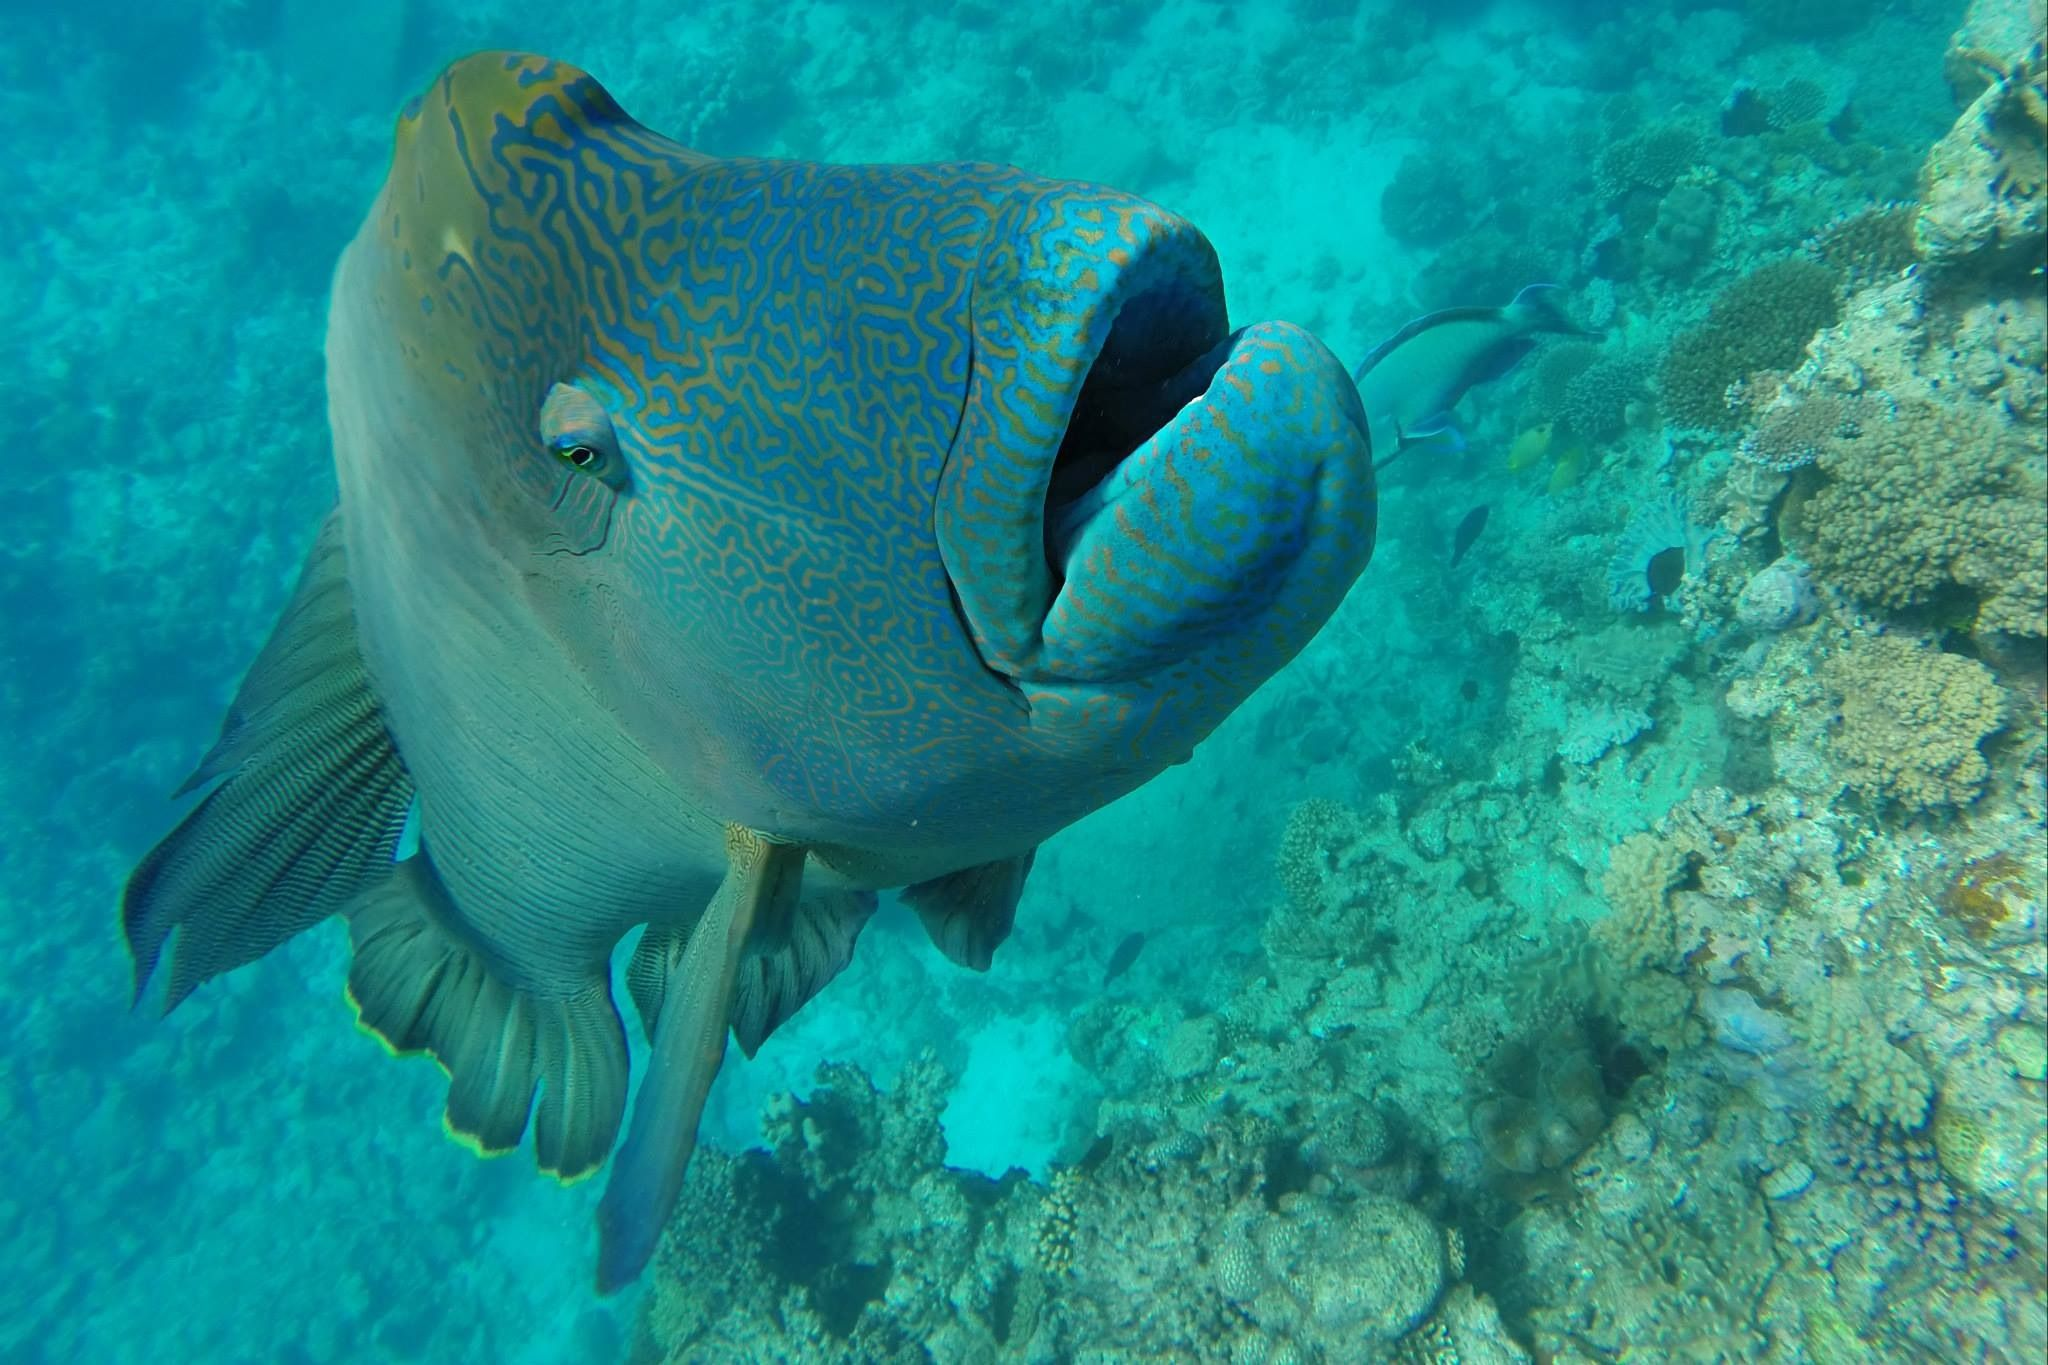 Pin by Lo on Betta | Fish pet, Great barrier reef, Animals - photo#27